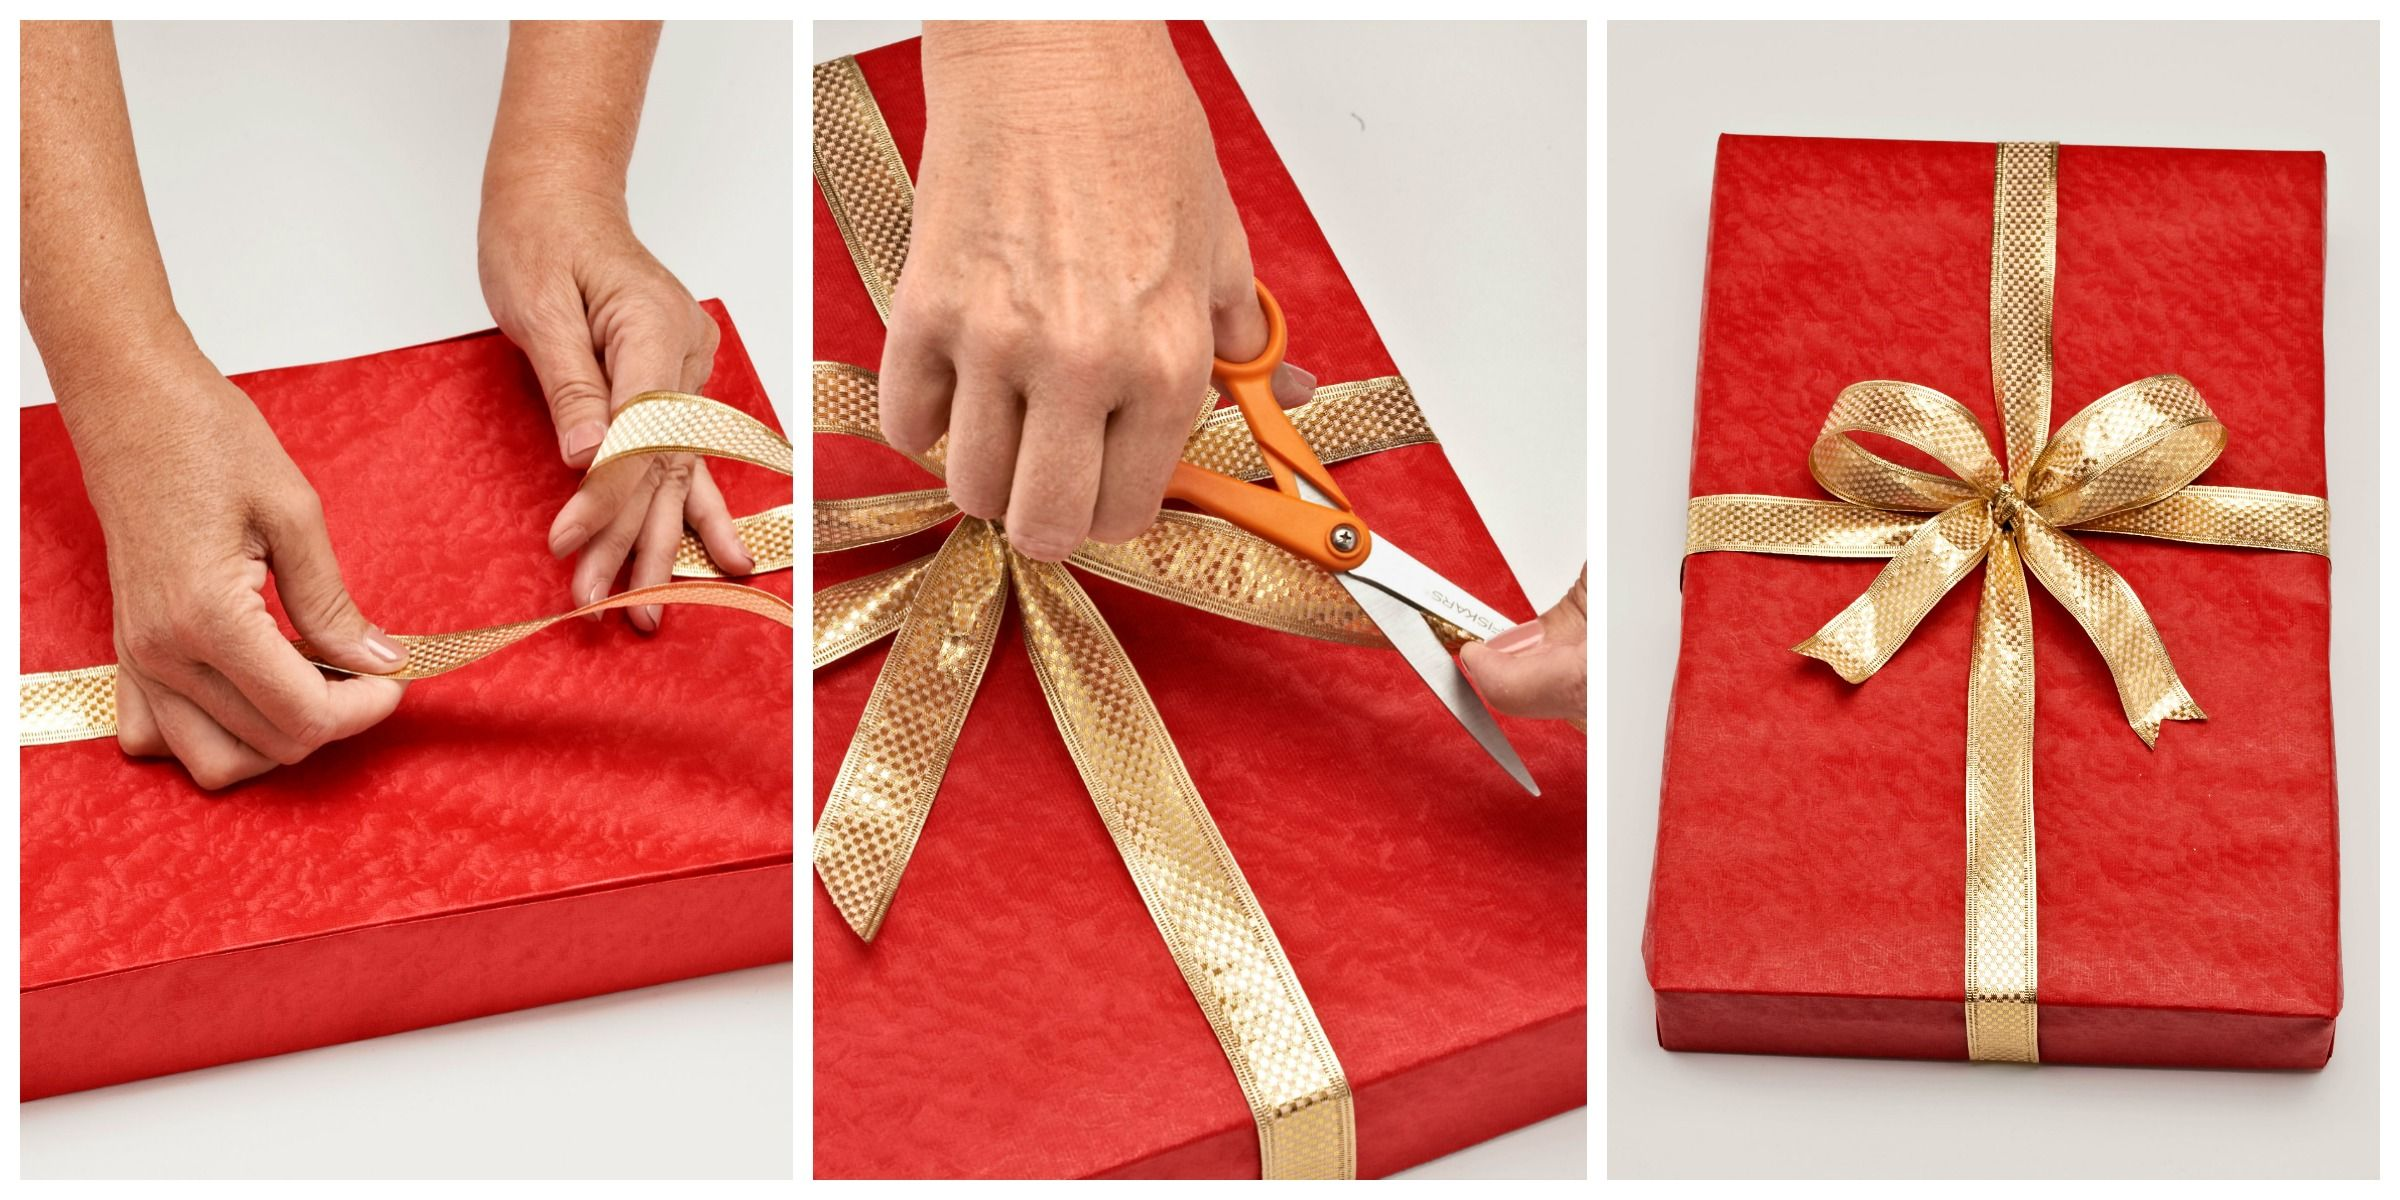 The Definitive Guide on How to Wrap a Gift